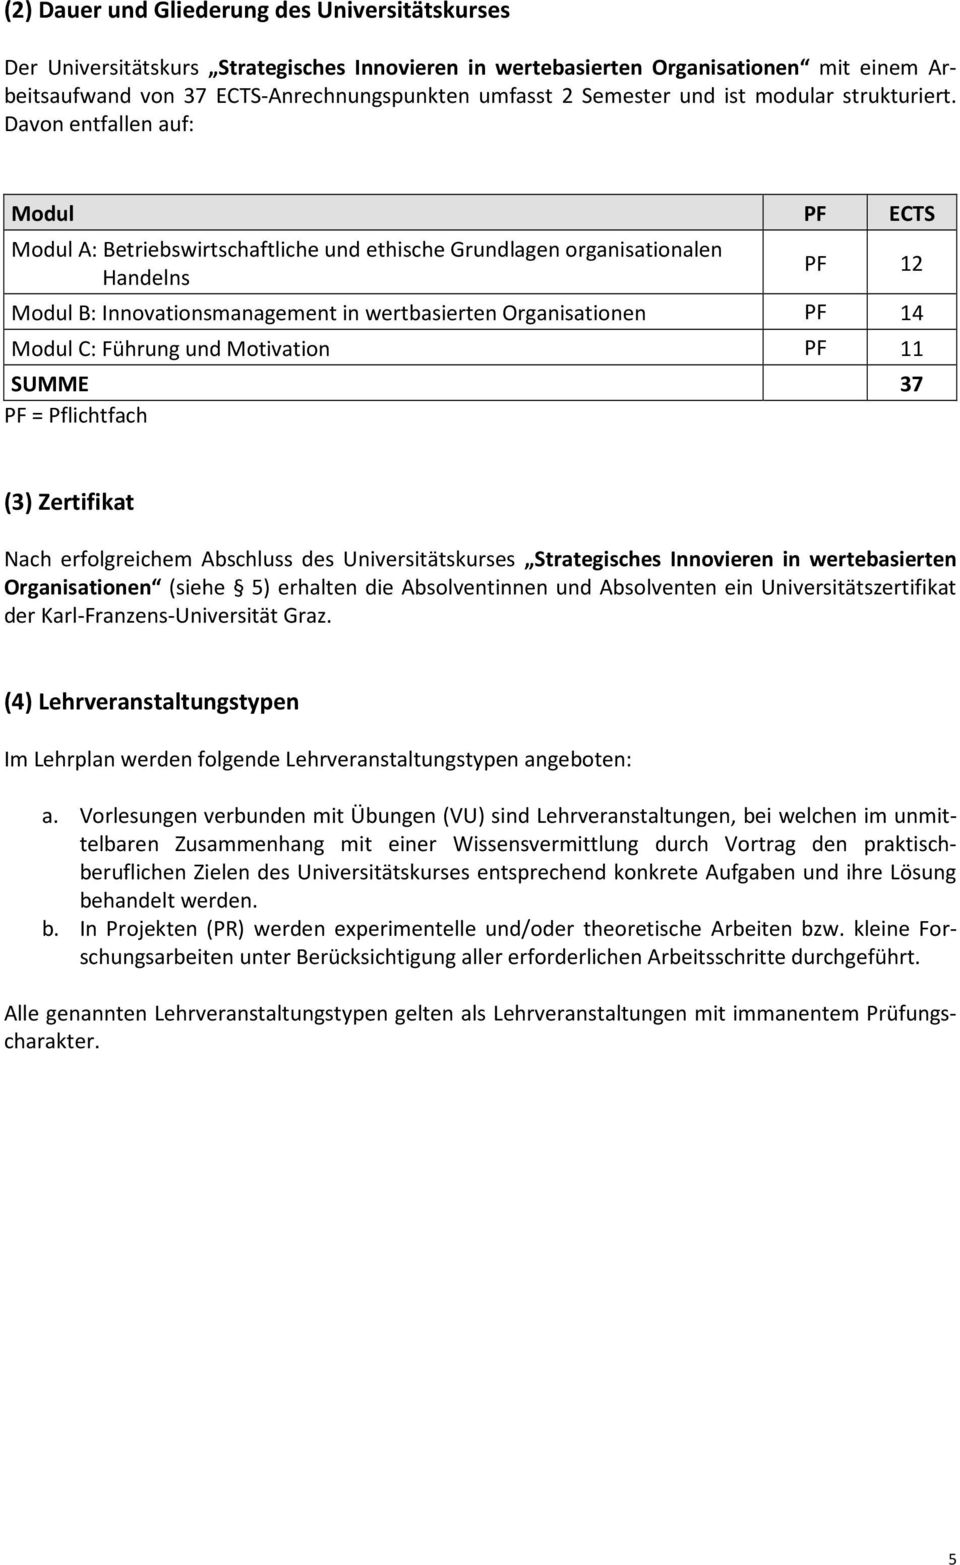 handelns PF 12 Modul B: Innovationsmanagement in wertbasierten Organisationen PF 14 Modul C: Führung und Motivation PF 11 SUMME 37 PF = Pflichtfach (3) Zertifikat Nach erfolgreichem Abschluss des